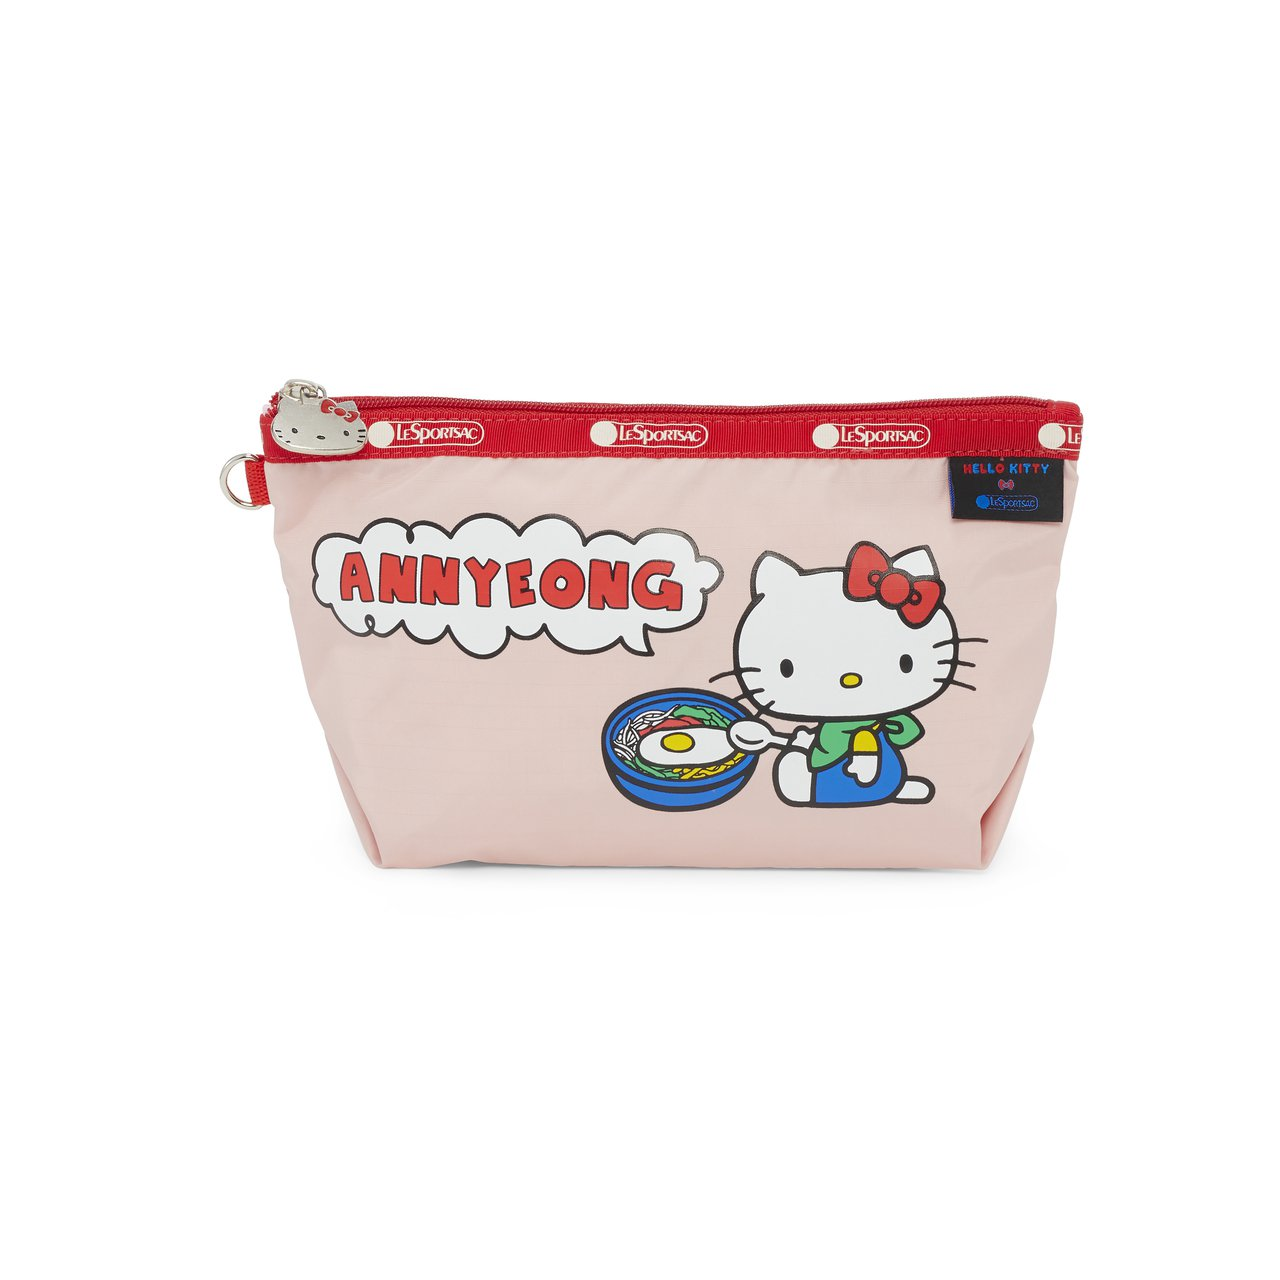 Hello Kitty x LeSportsac聯名系列「ANNYEONG」中梯...